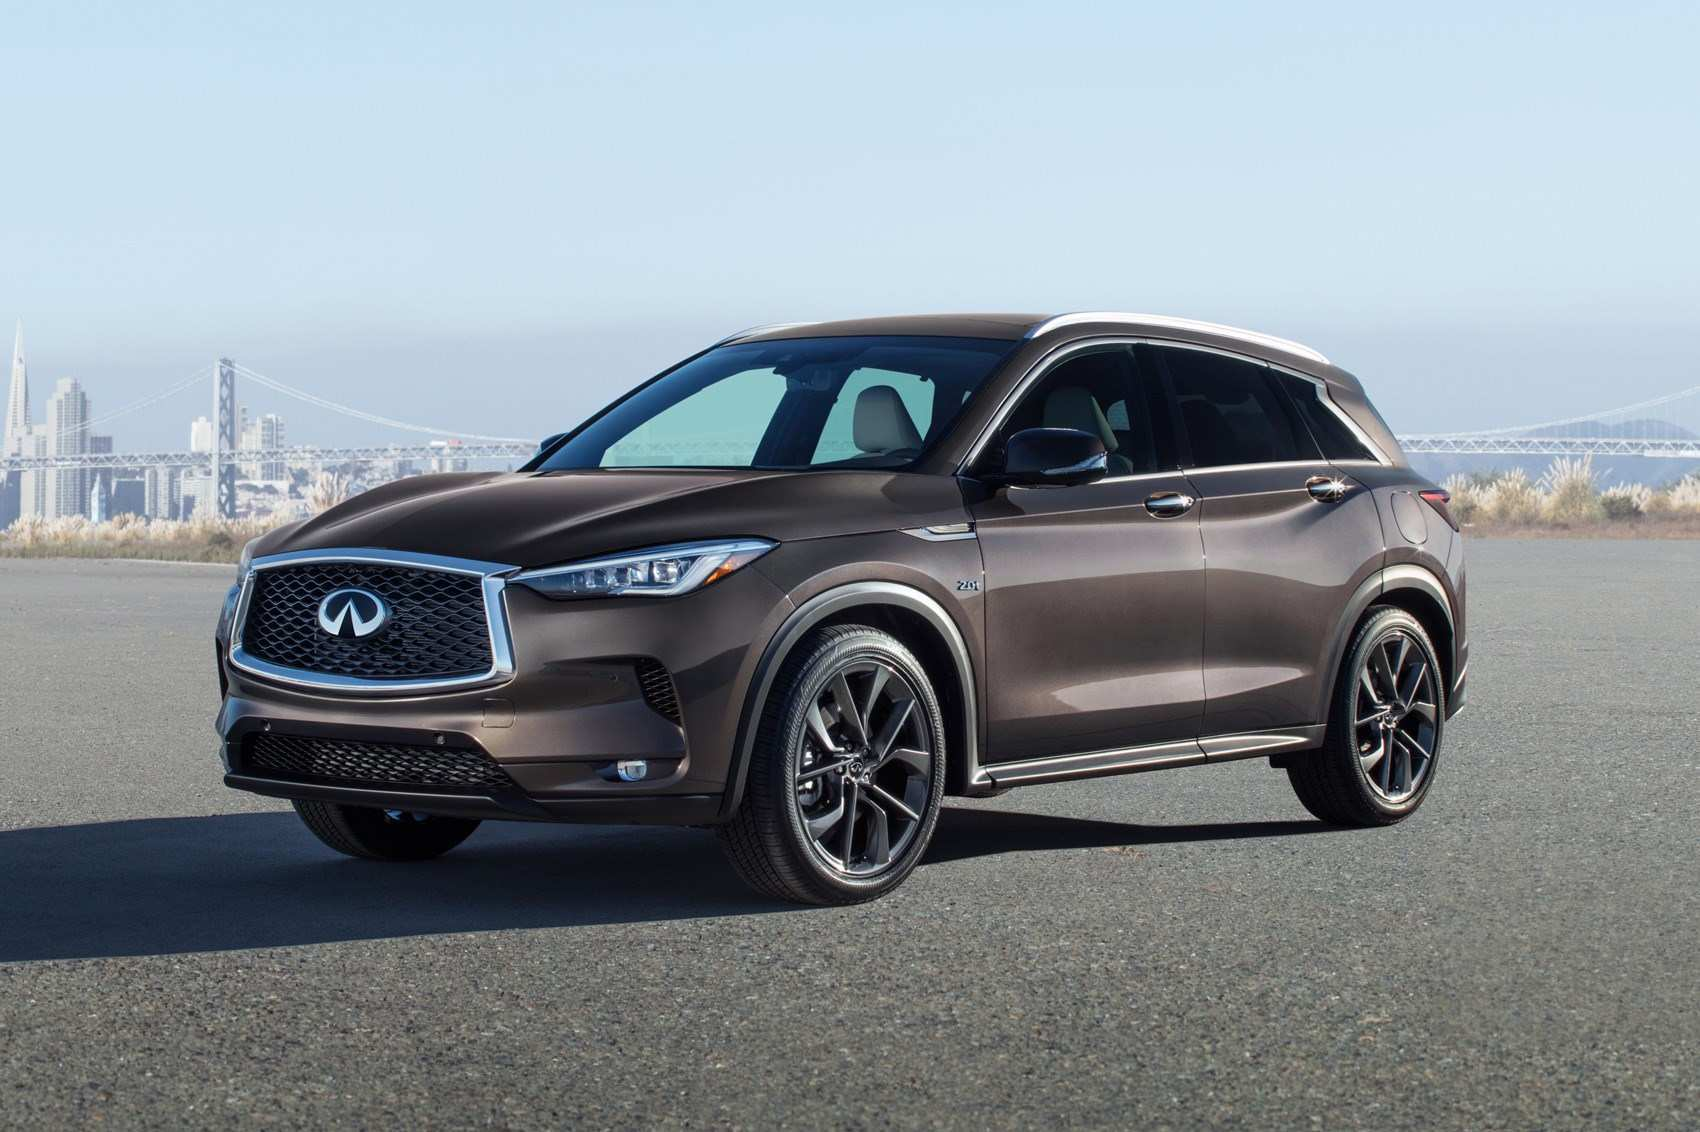 89 New 2020 Infiniti Cars Overview